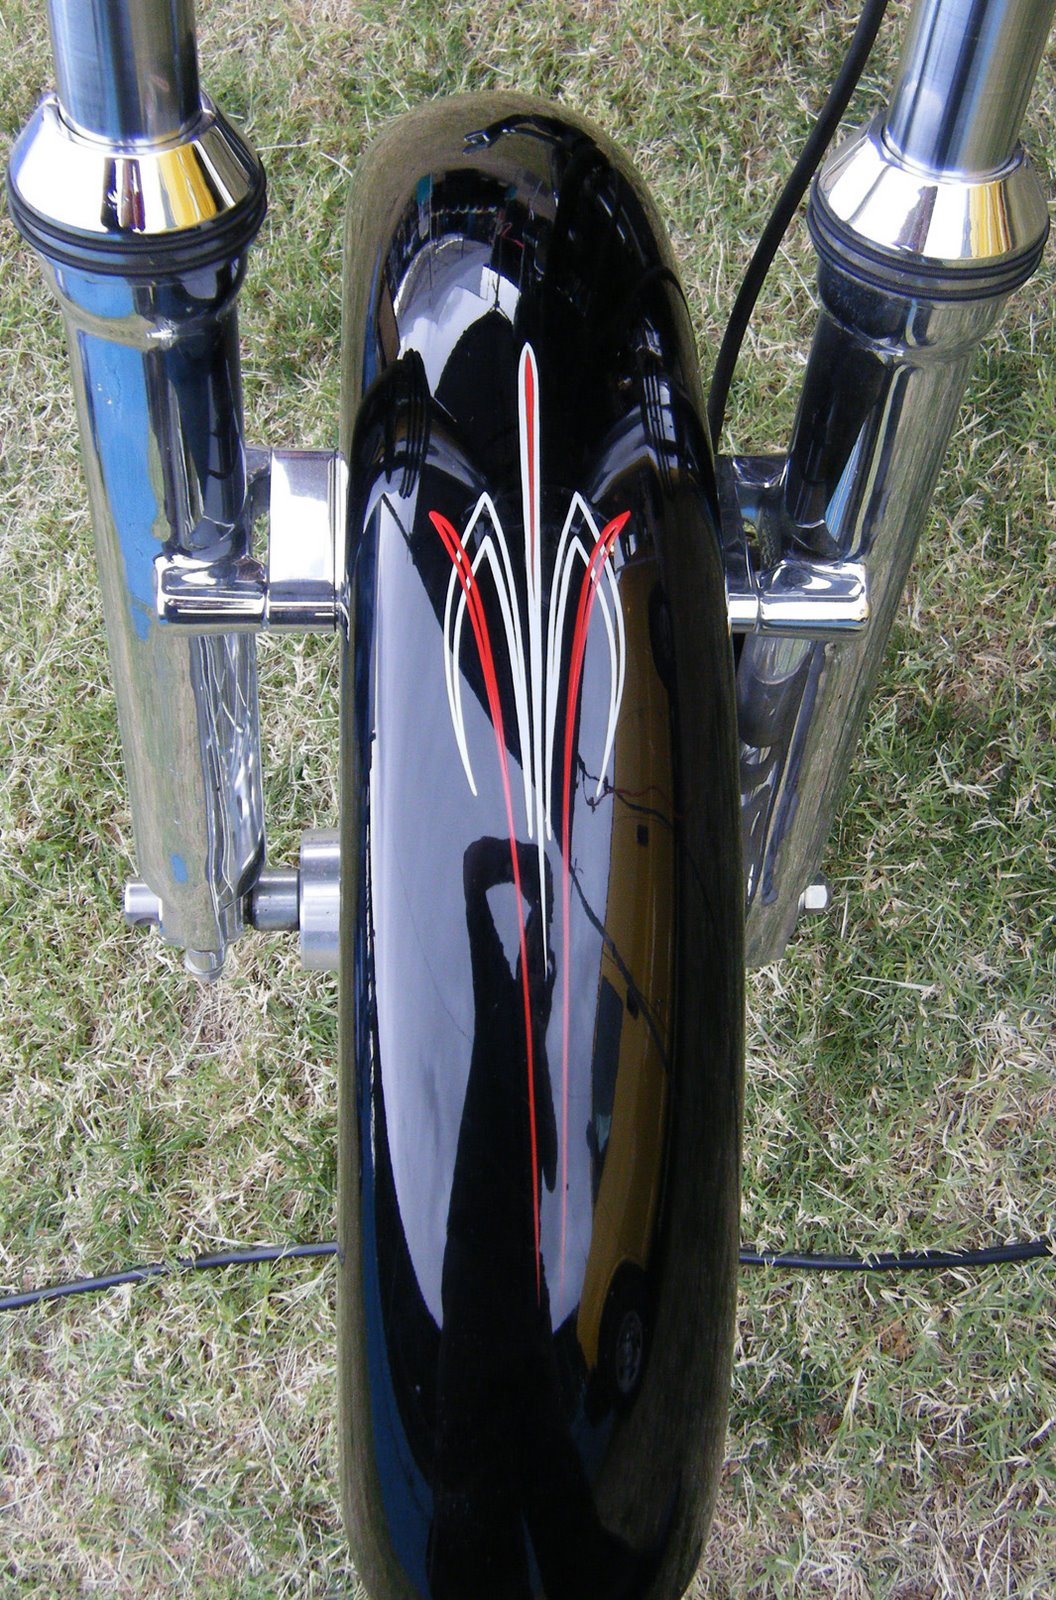 [dice+striping+front+fender.jpg+blog]